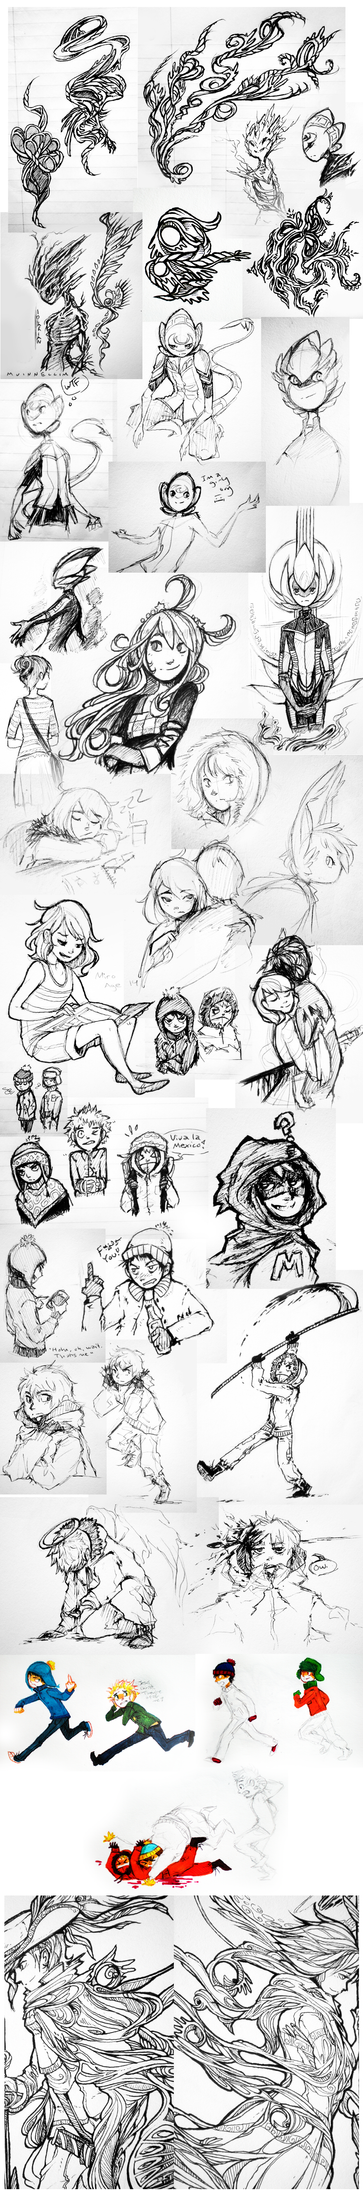 Doodle Page - 25 by Tuooneo